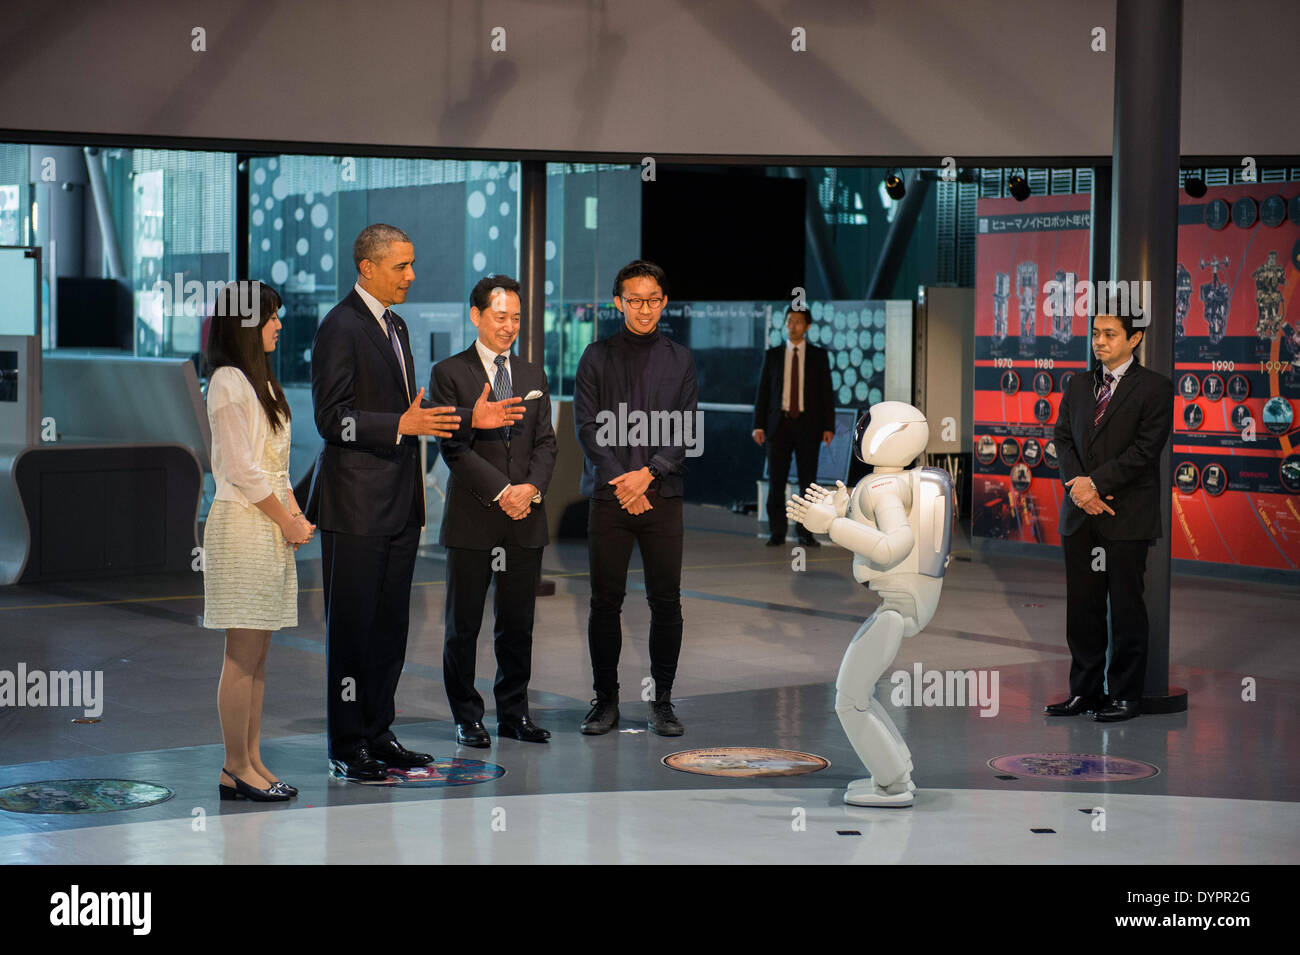 US President Barack Obama with Miraikan Director and astronaut Mamoru Mohri, center right, react to Honda's ASIMO humanoid robot during a visit to the National Museum of Emerging Science & Innovation April 24, 2014 in Tokyo, Japan. - Stock Image